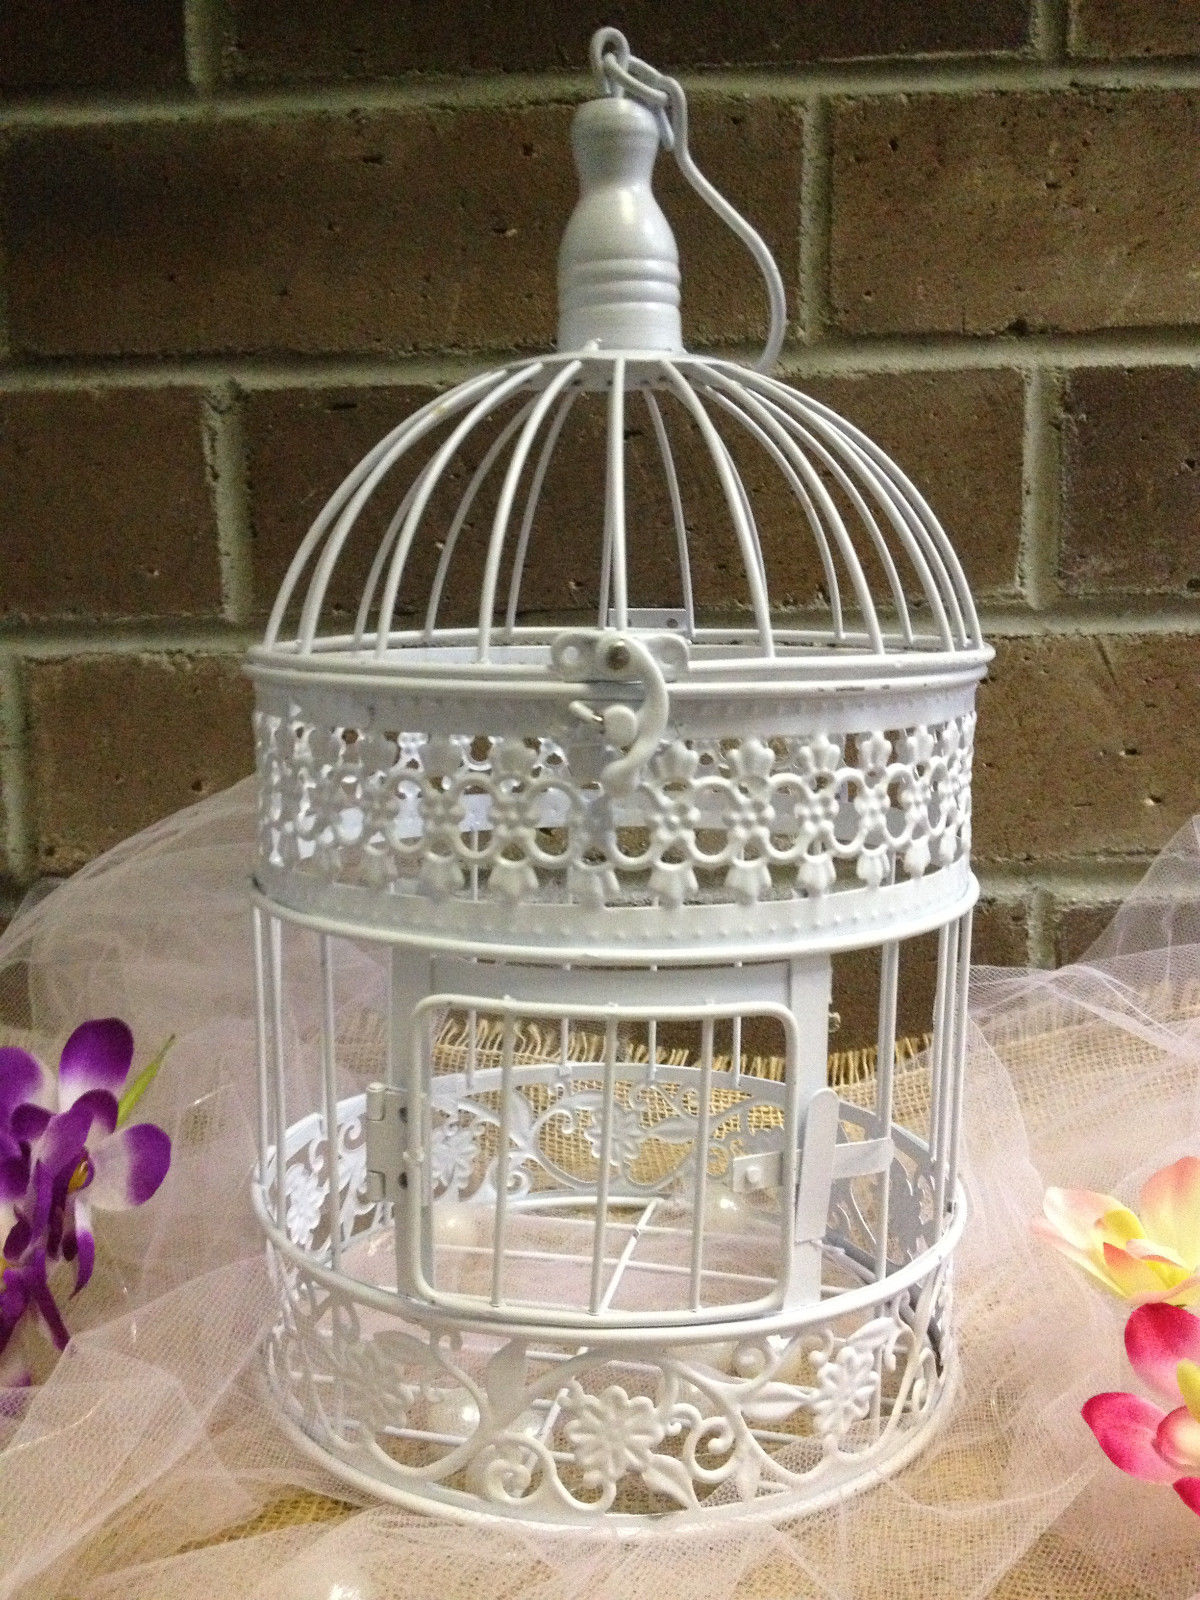 13 x7 white metal birdcage wedding t card holder wishing well reception 1